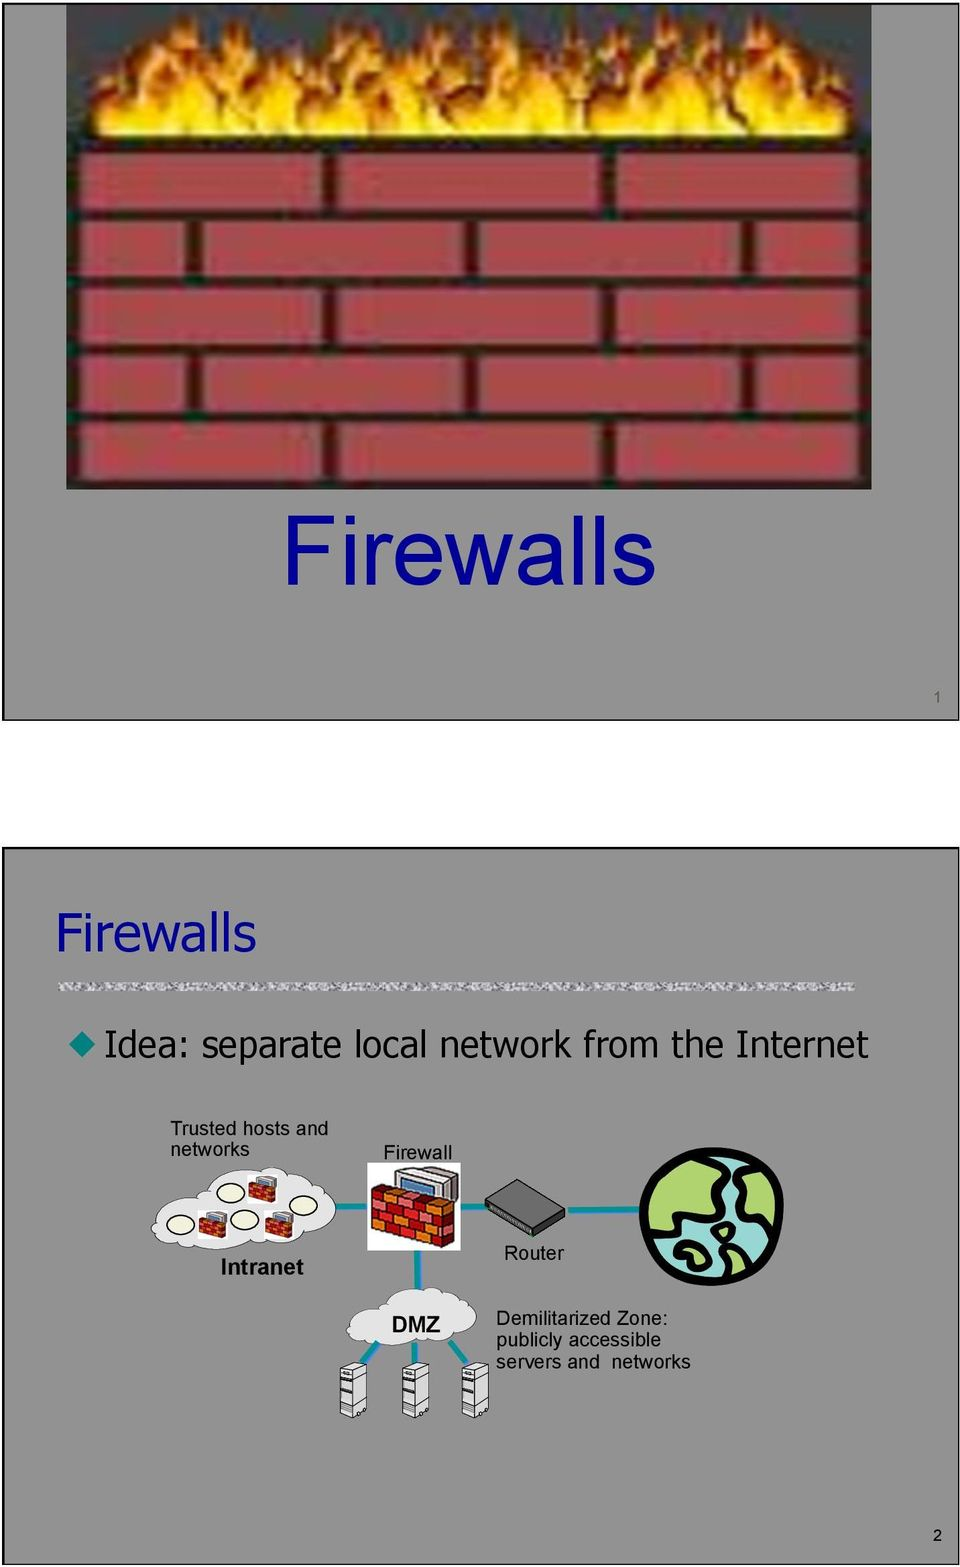 networks Firewall Intranet Router DMZ